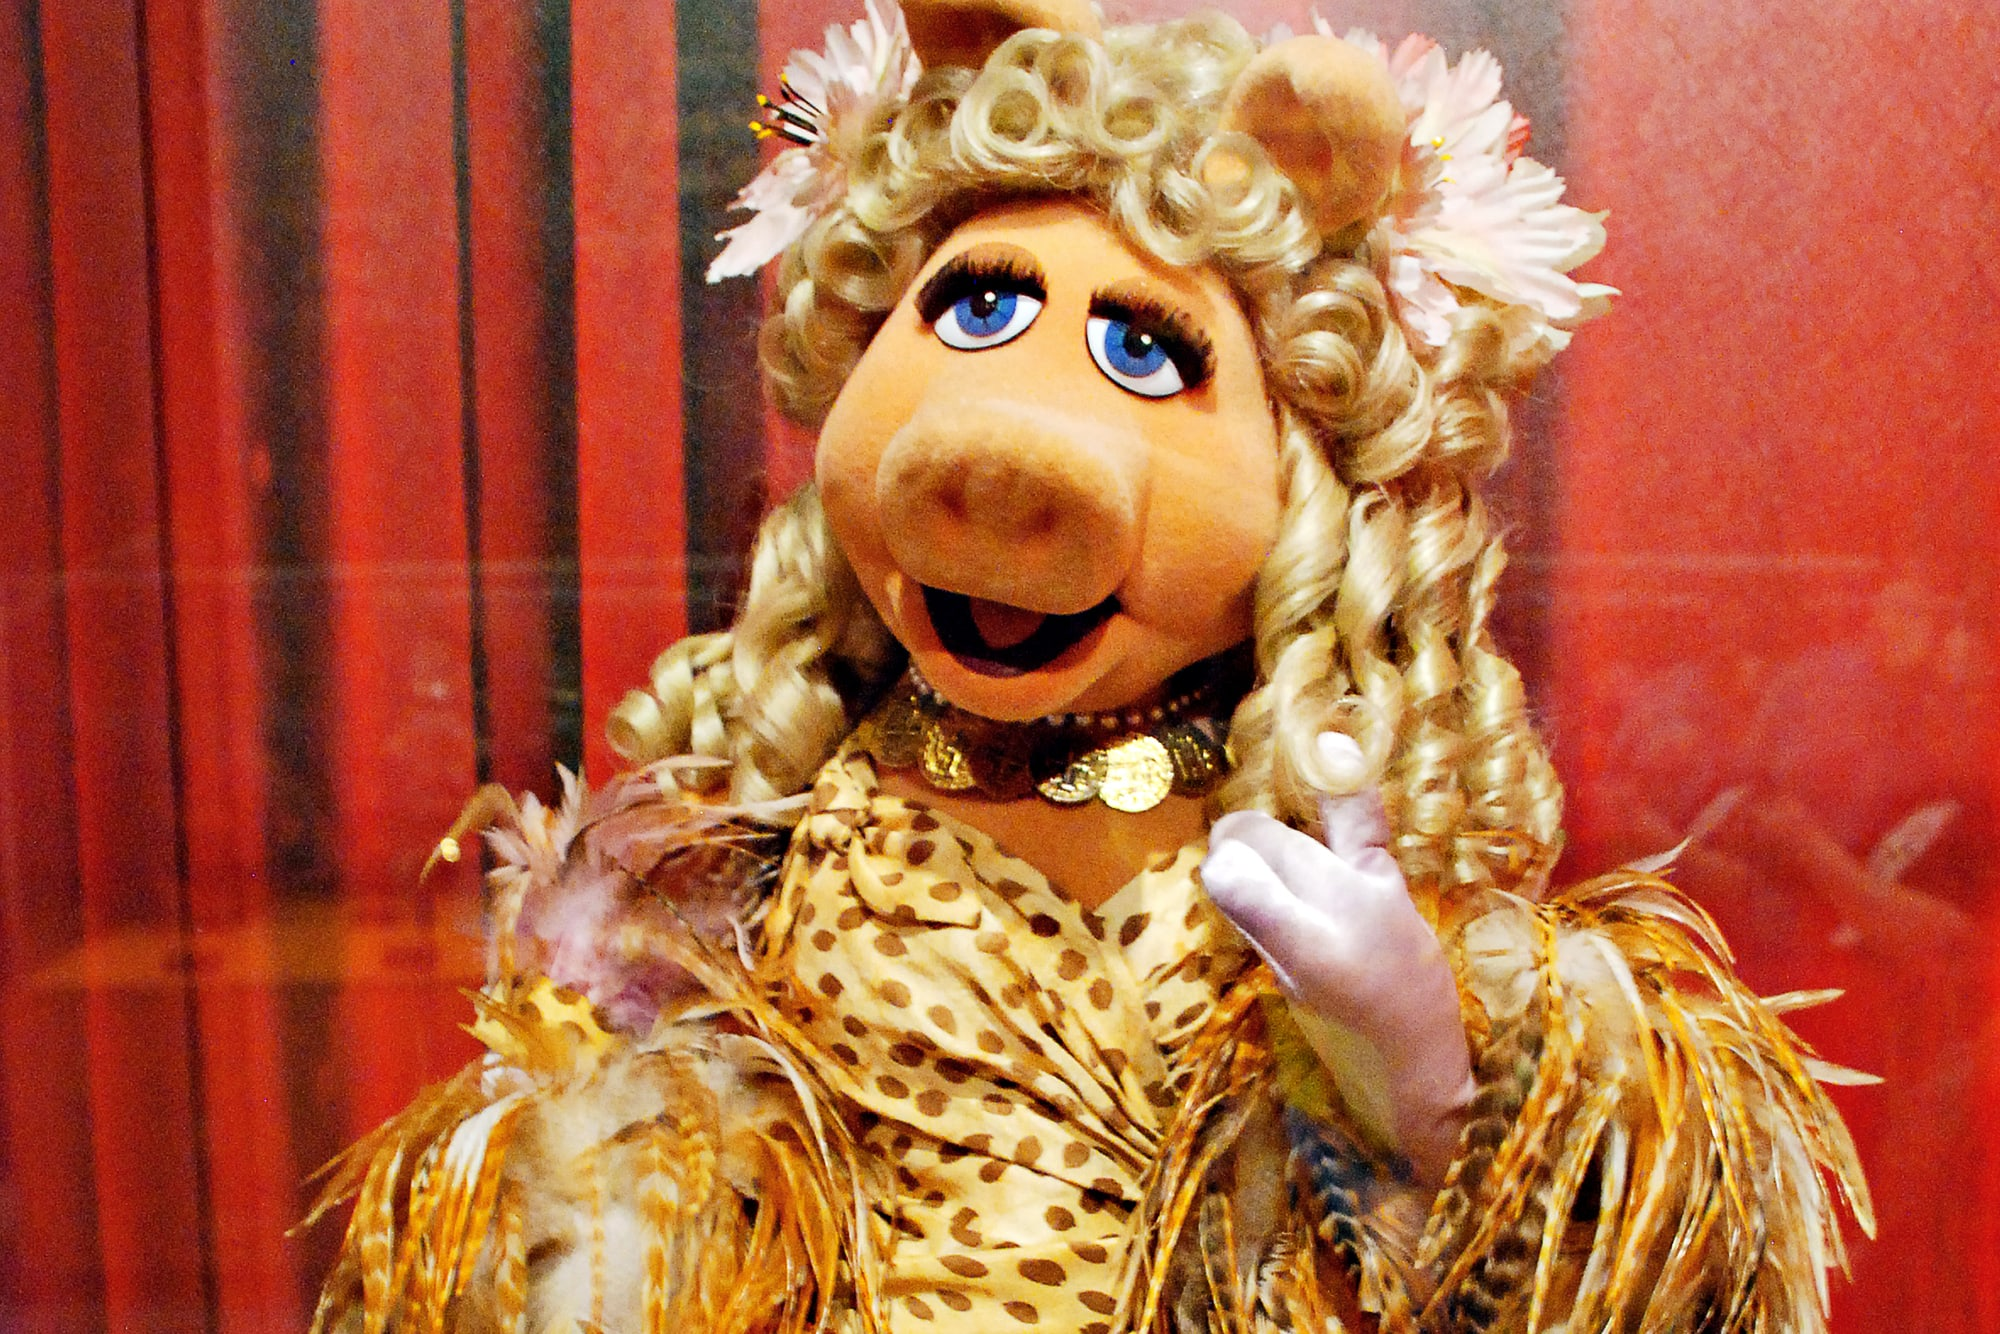 Miss Piggy sits behind glass looking glamorous, as part of the Jim Henson Collection at Worlds of Puppetry Museum in Atlanta, Georgia.